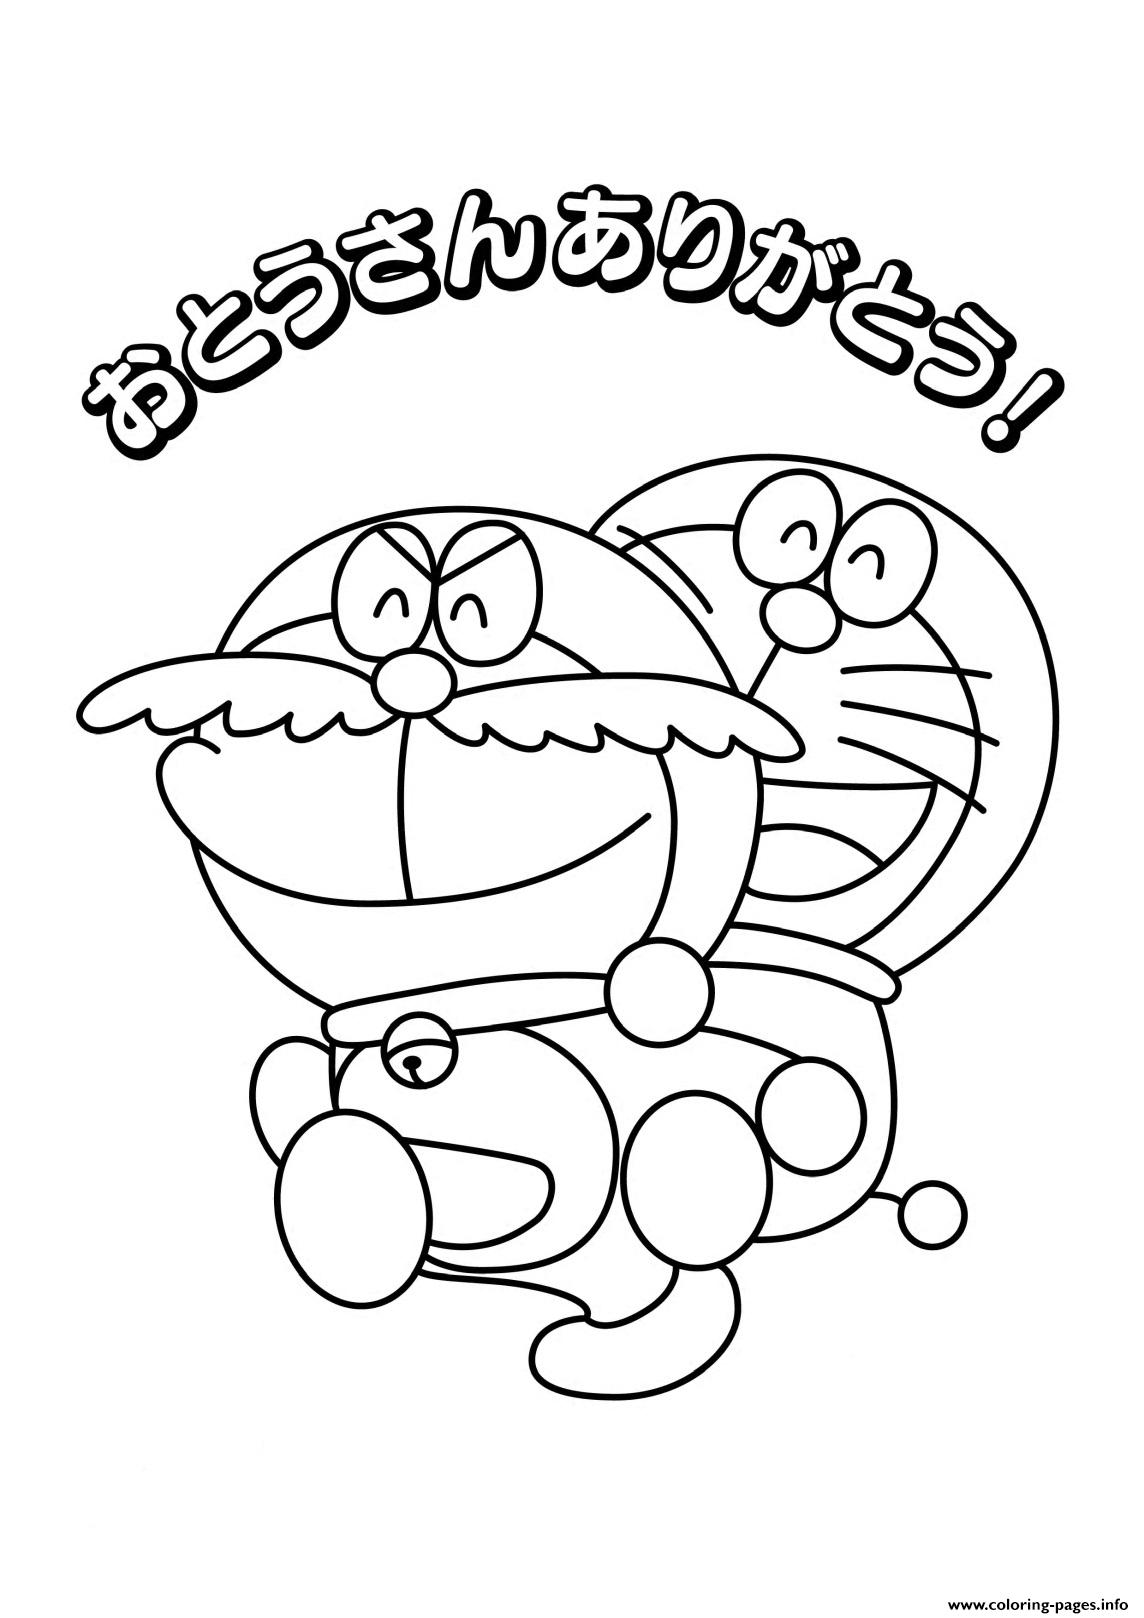 Doraemon With Mustache 62e1 Coloring Pages Printable